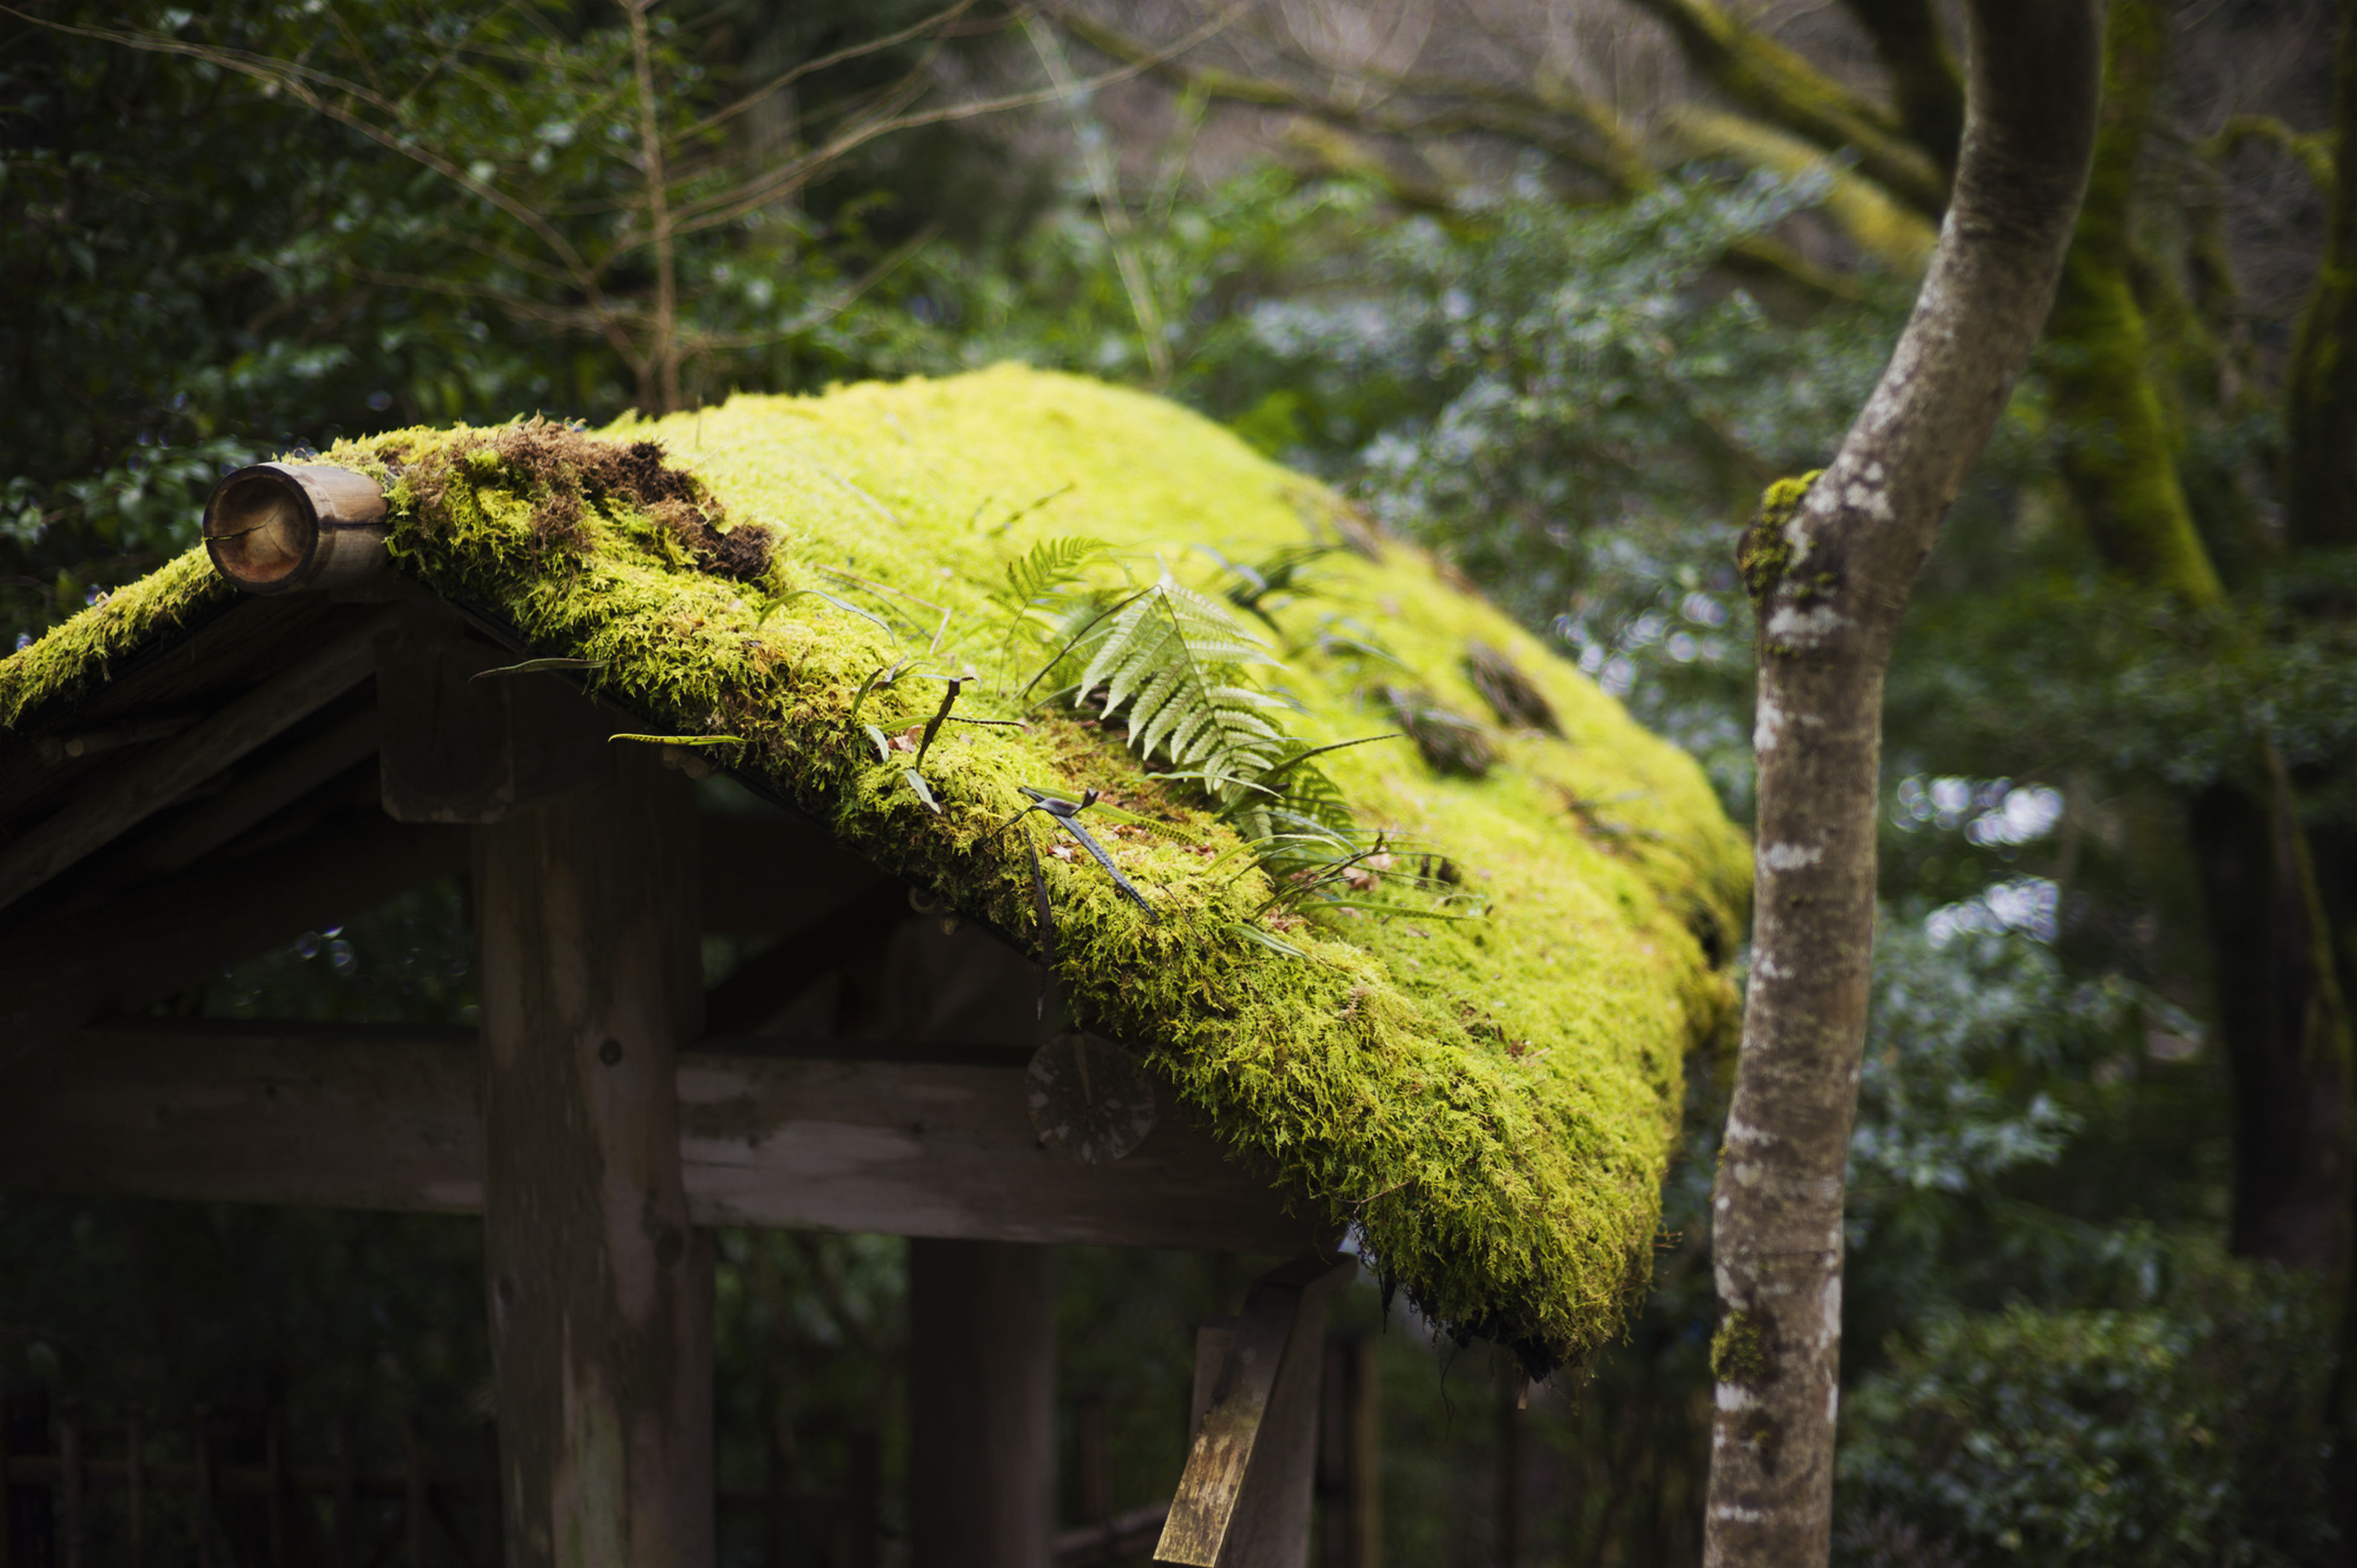 tree, wood - material, focus on foreground, growth, tree trunk, green color, nature, forest, branch, close-up, plant, moss, outdoors, fence, day, wooden, no people, wood, tranquility, selective focus